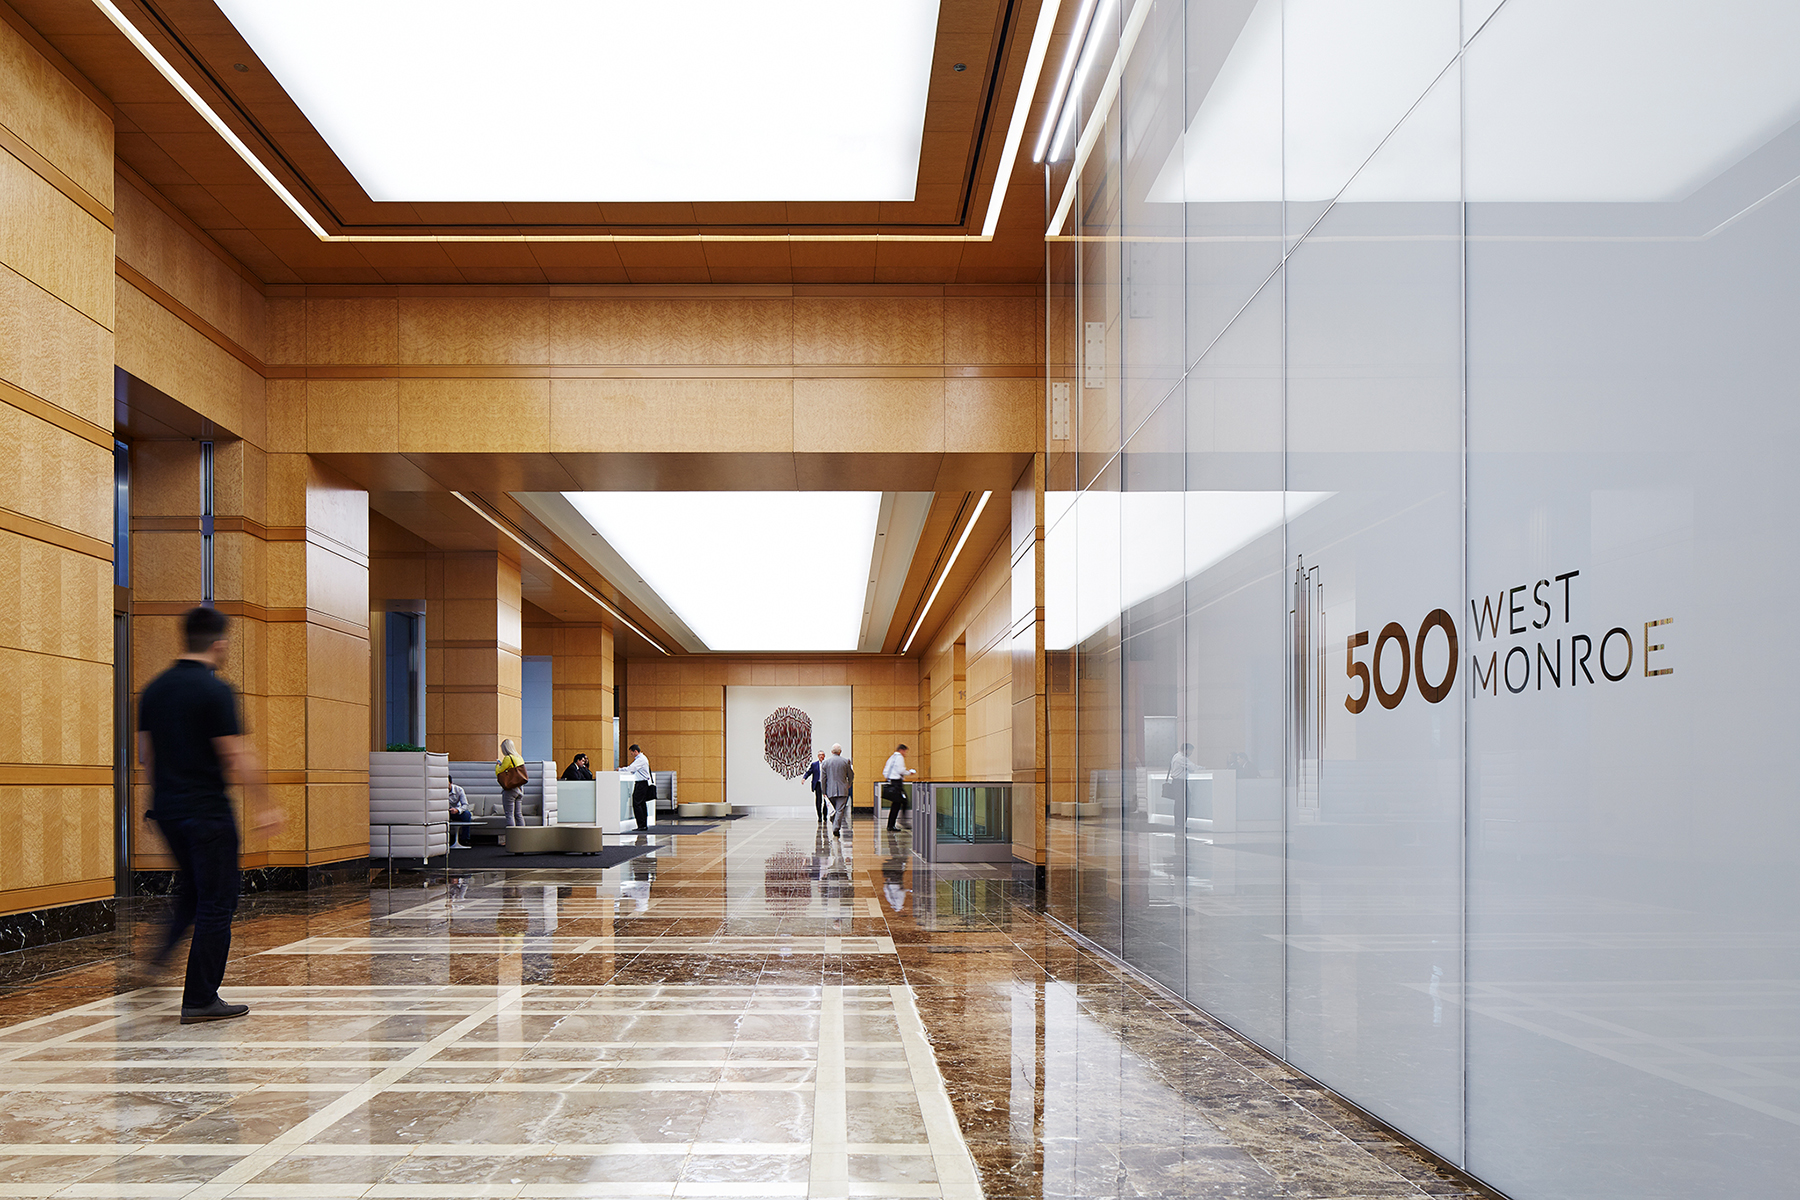 500-West-Monroe-Chicago-Illinois-Lobby-H